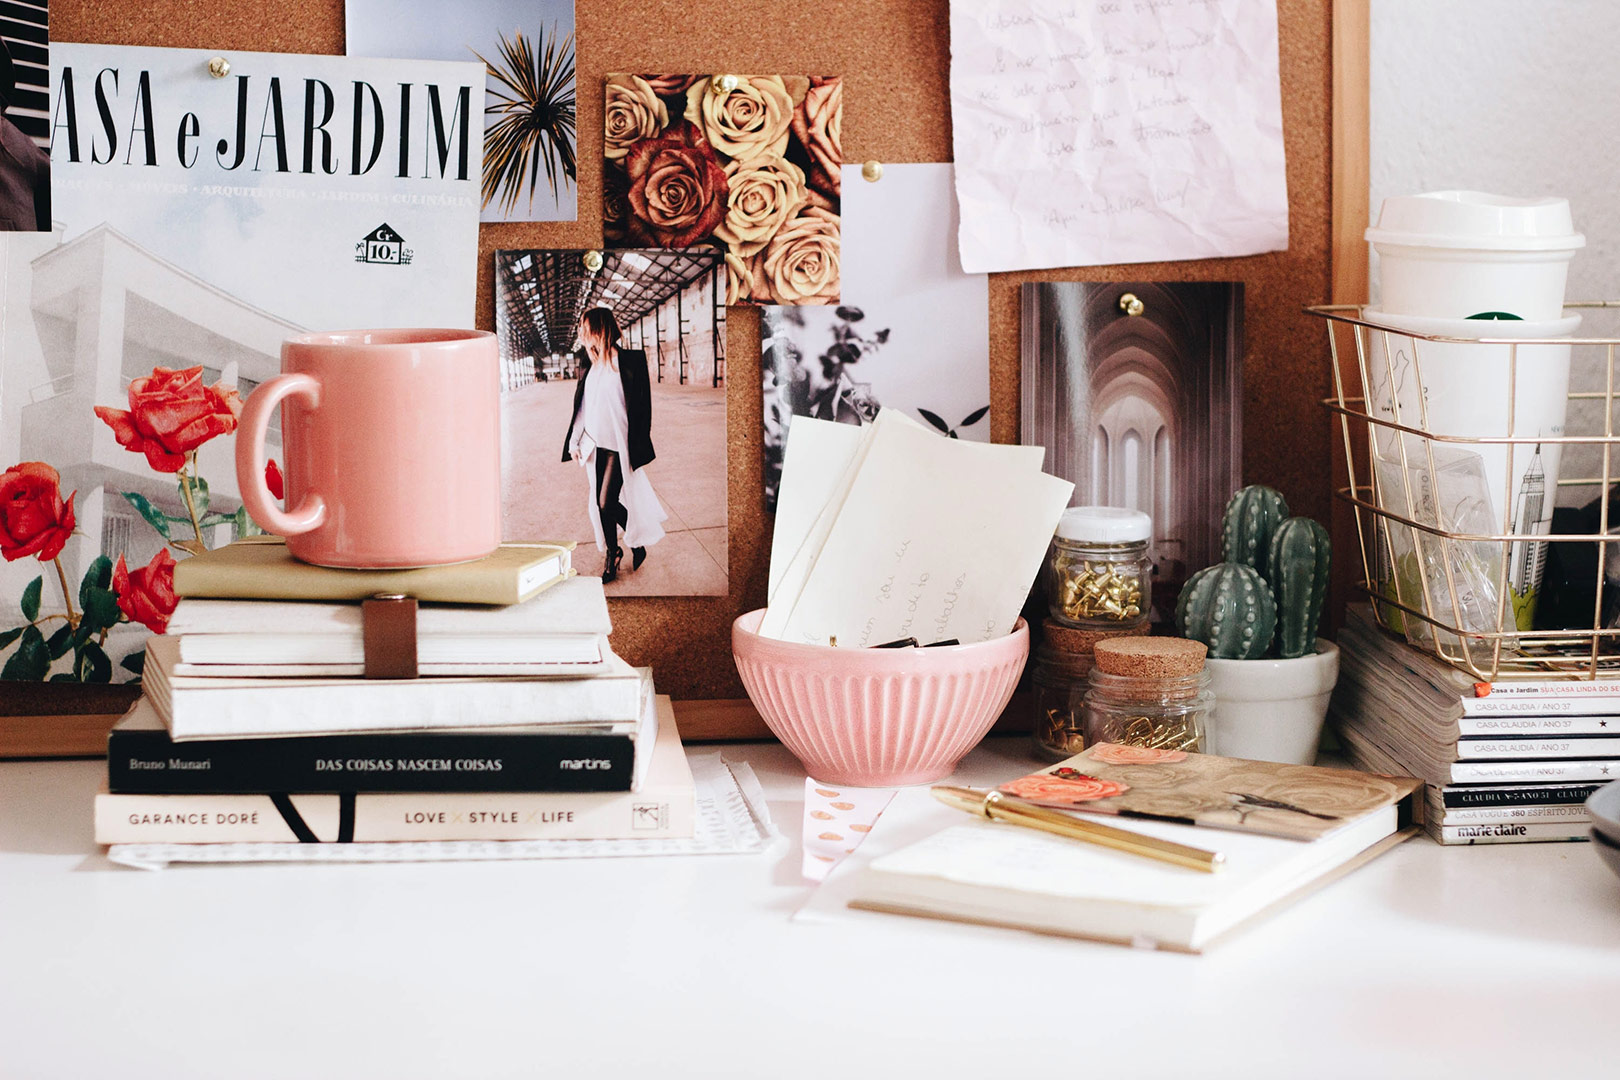 cute little desk area with lots of personal items on like coffee mugs and notepads